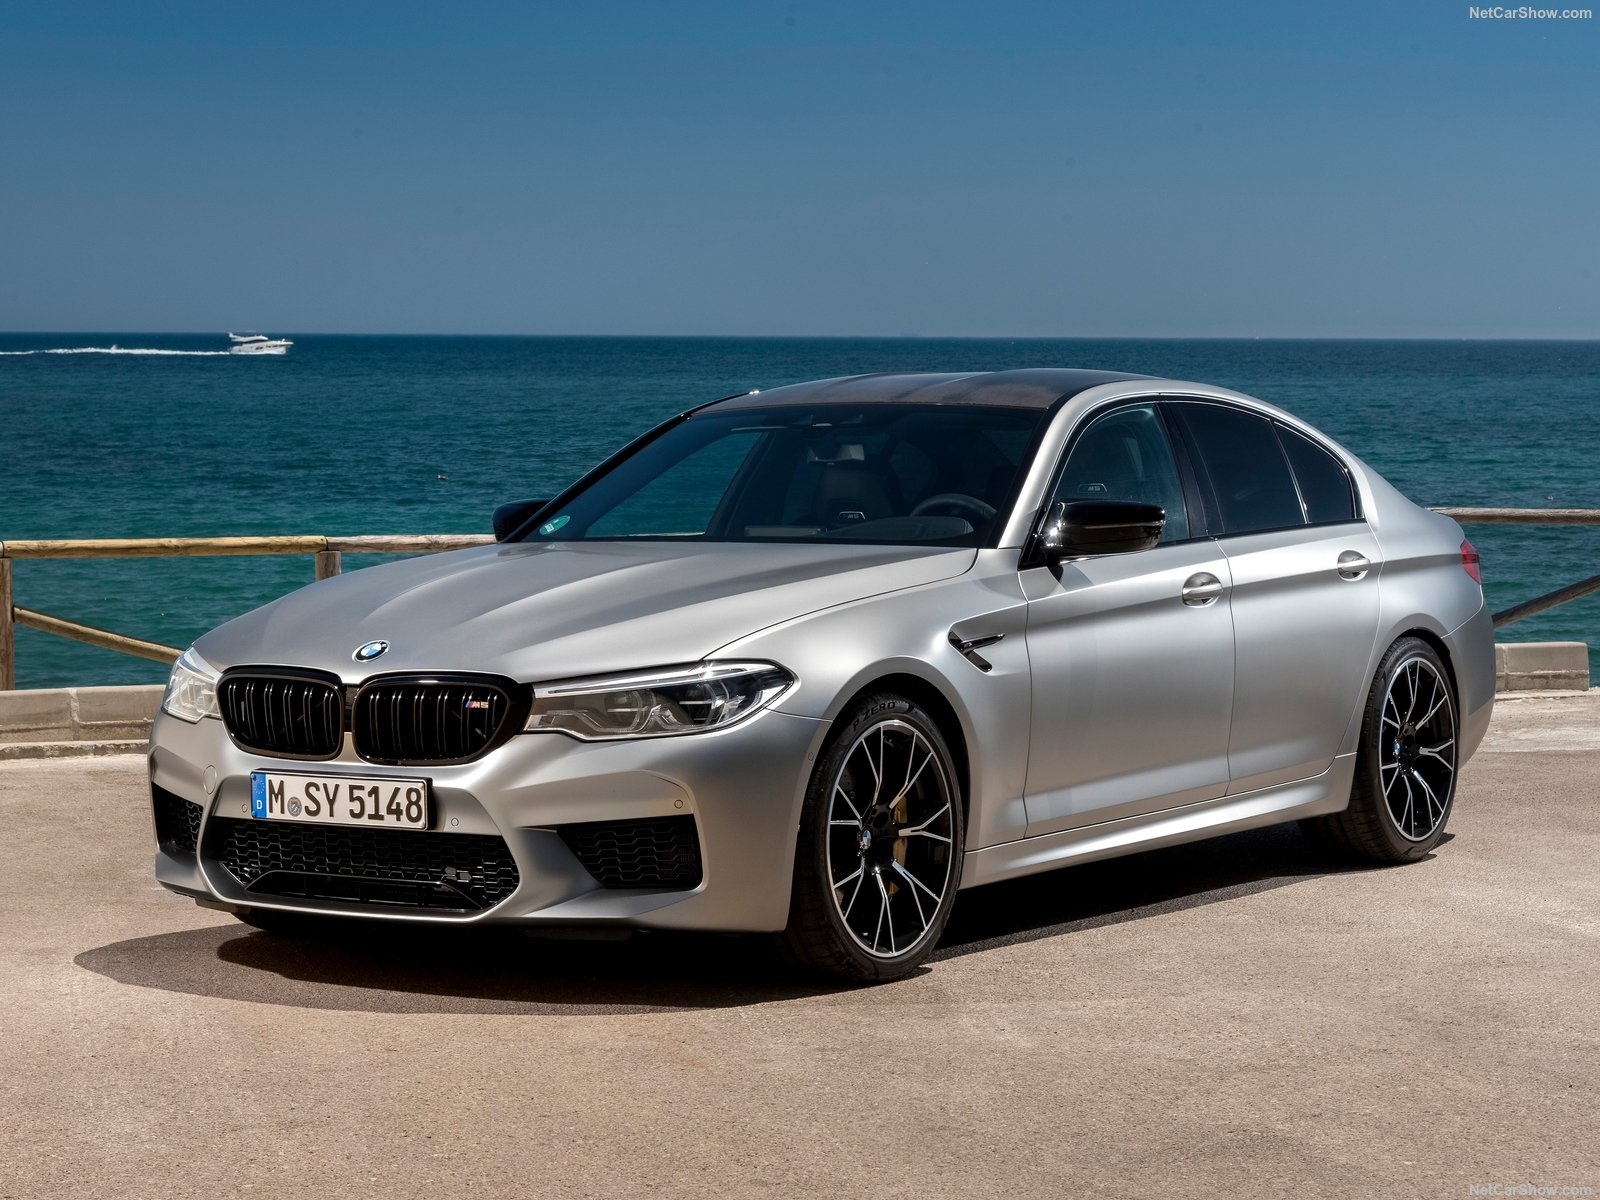 Bmw M5 F90 Picture 189940 Bmw Photo Gallery Carsbasecom